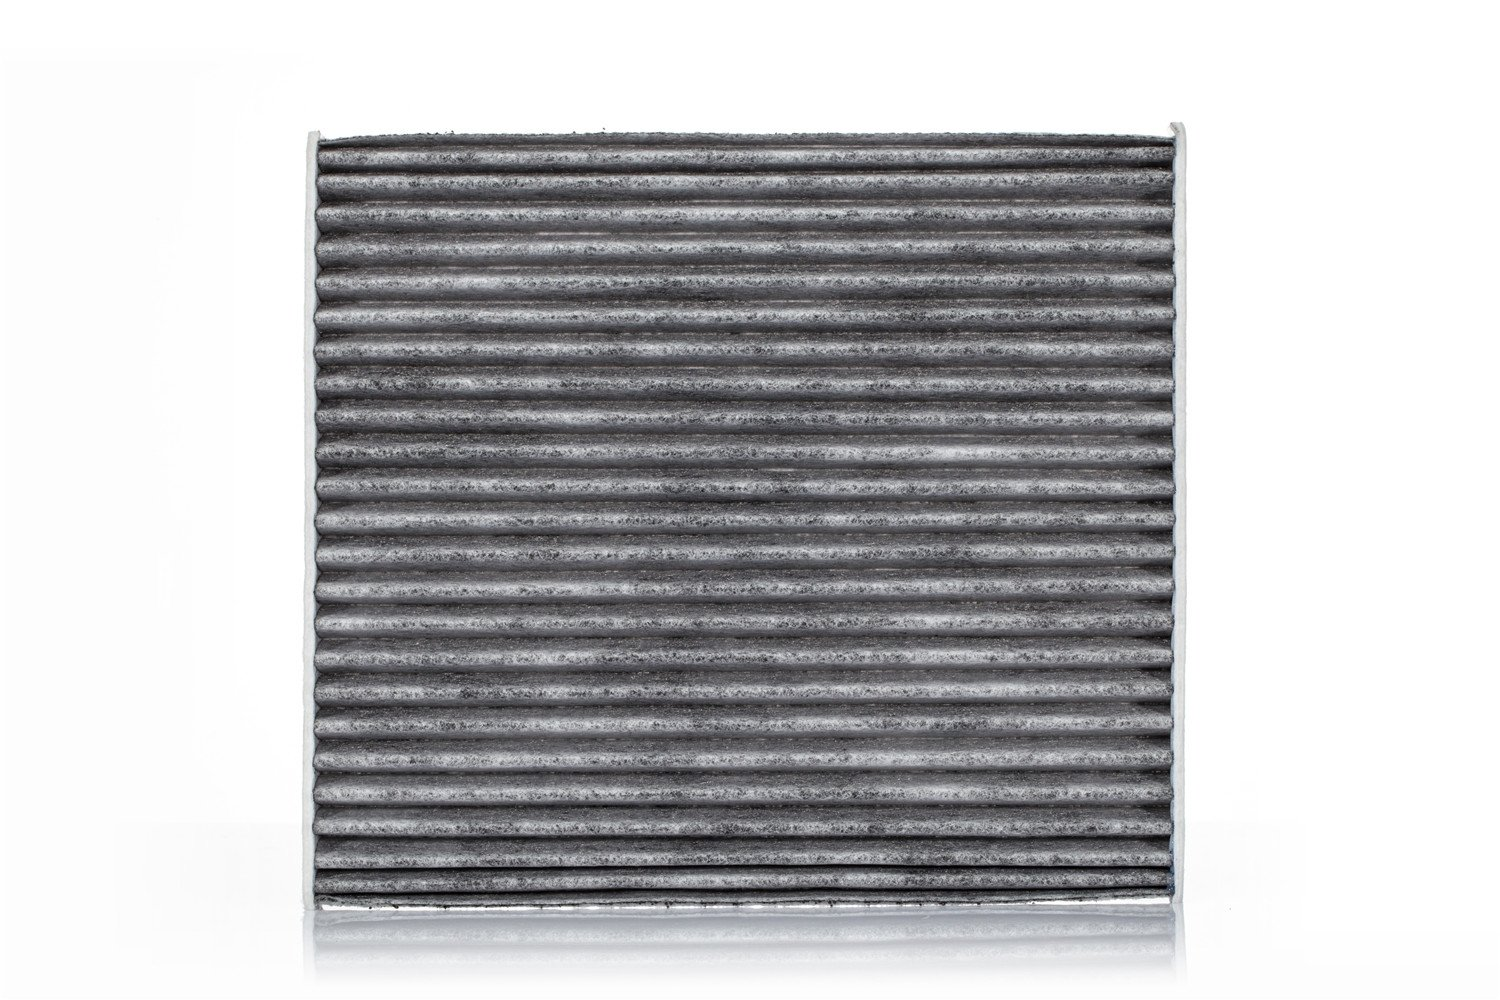 Mr.Ho MH819 Car Cabin Air Filter Replacement for CF11819 with Activated Carbon for Hyundai/Chevrolet/GMC/KIA/Saturn